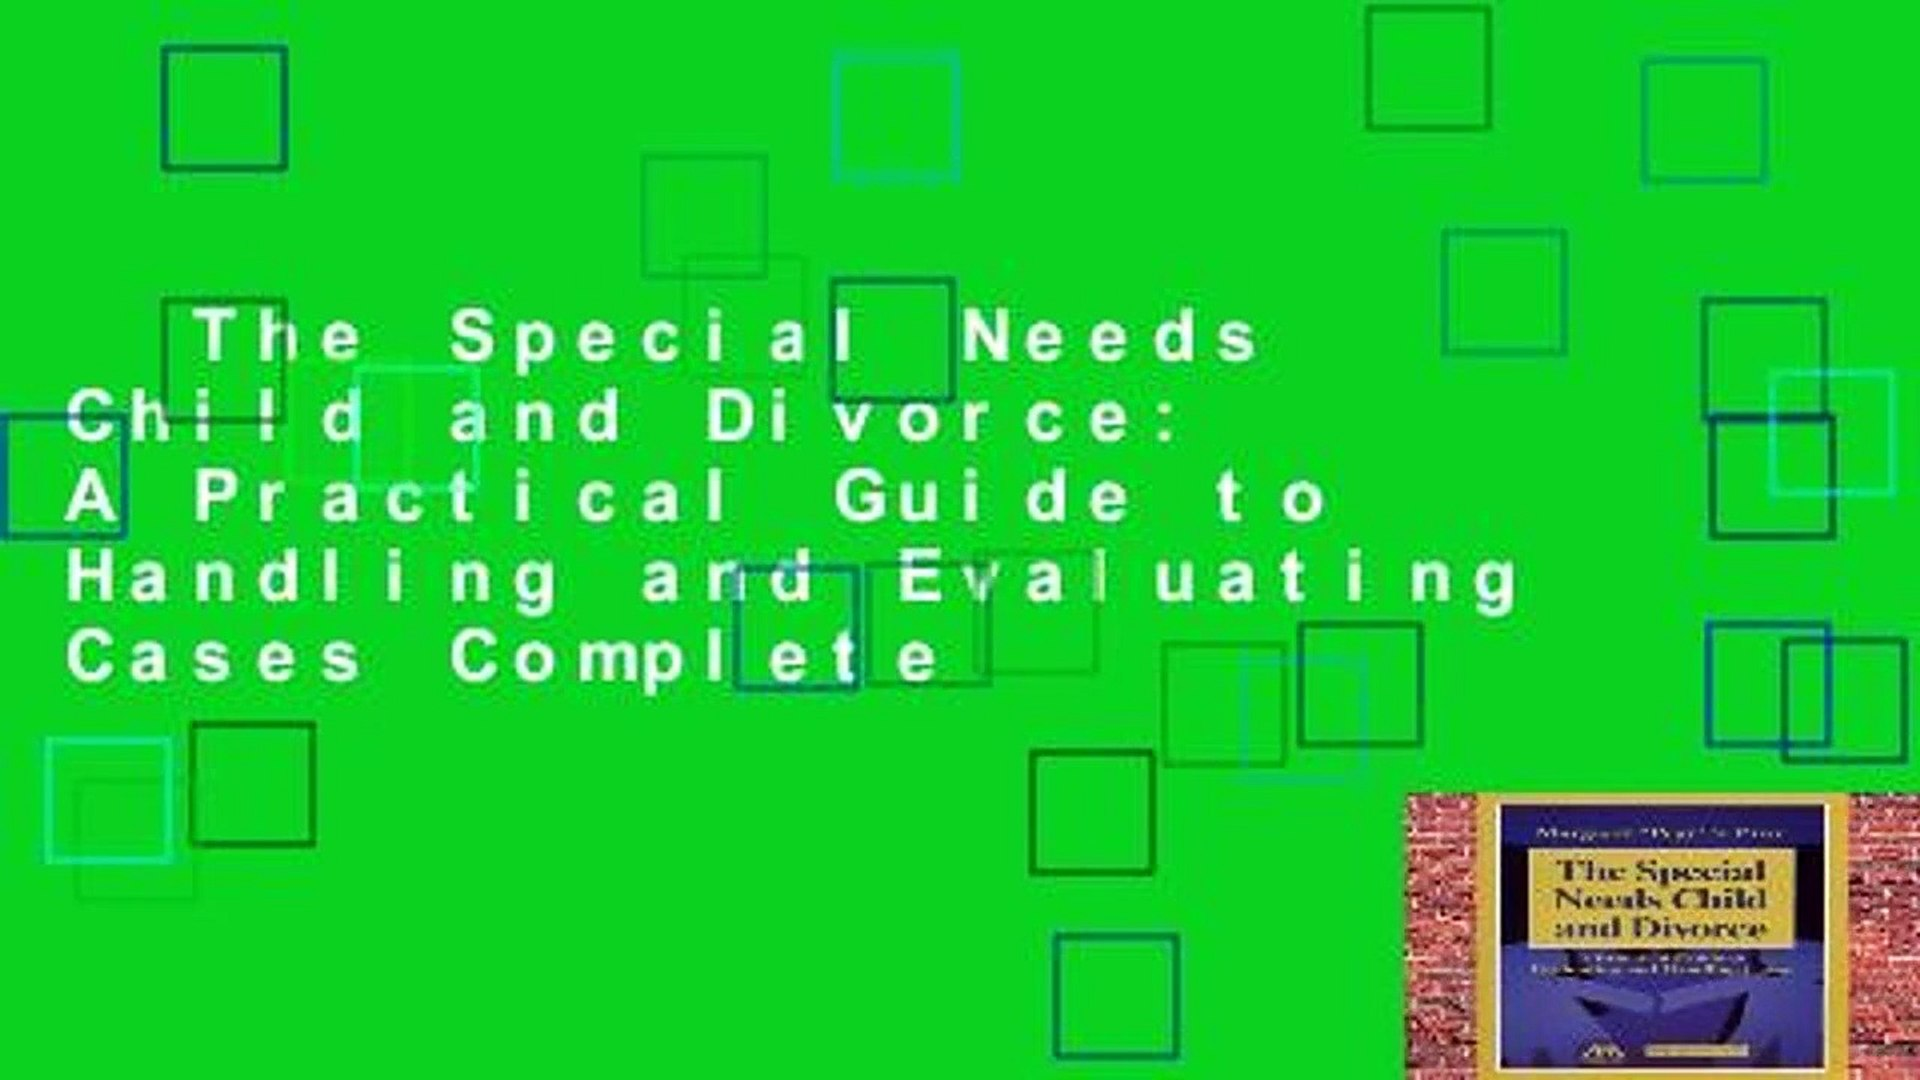 The Special Needs Child and Divorce: A Practical Guide to Handling and Evaluating Cases Complete